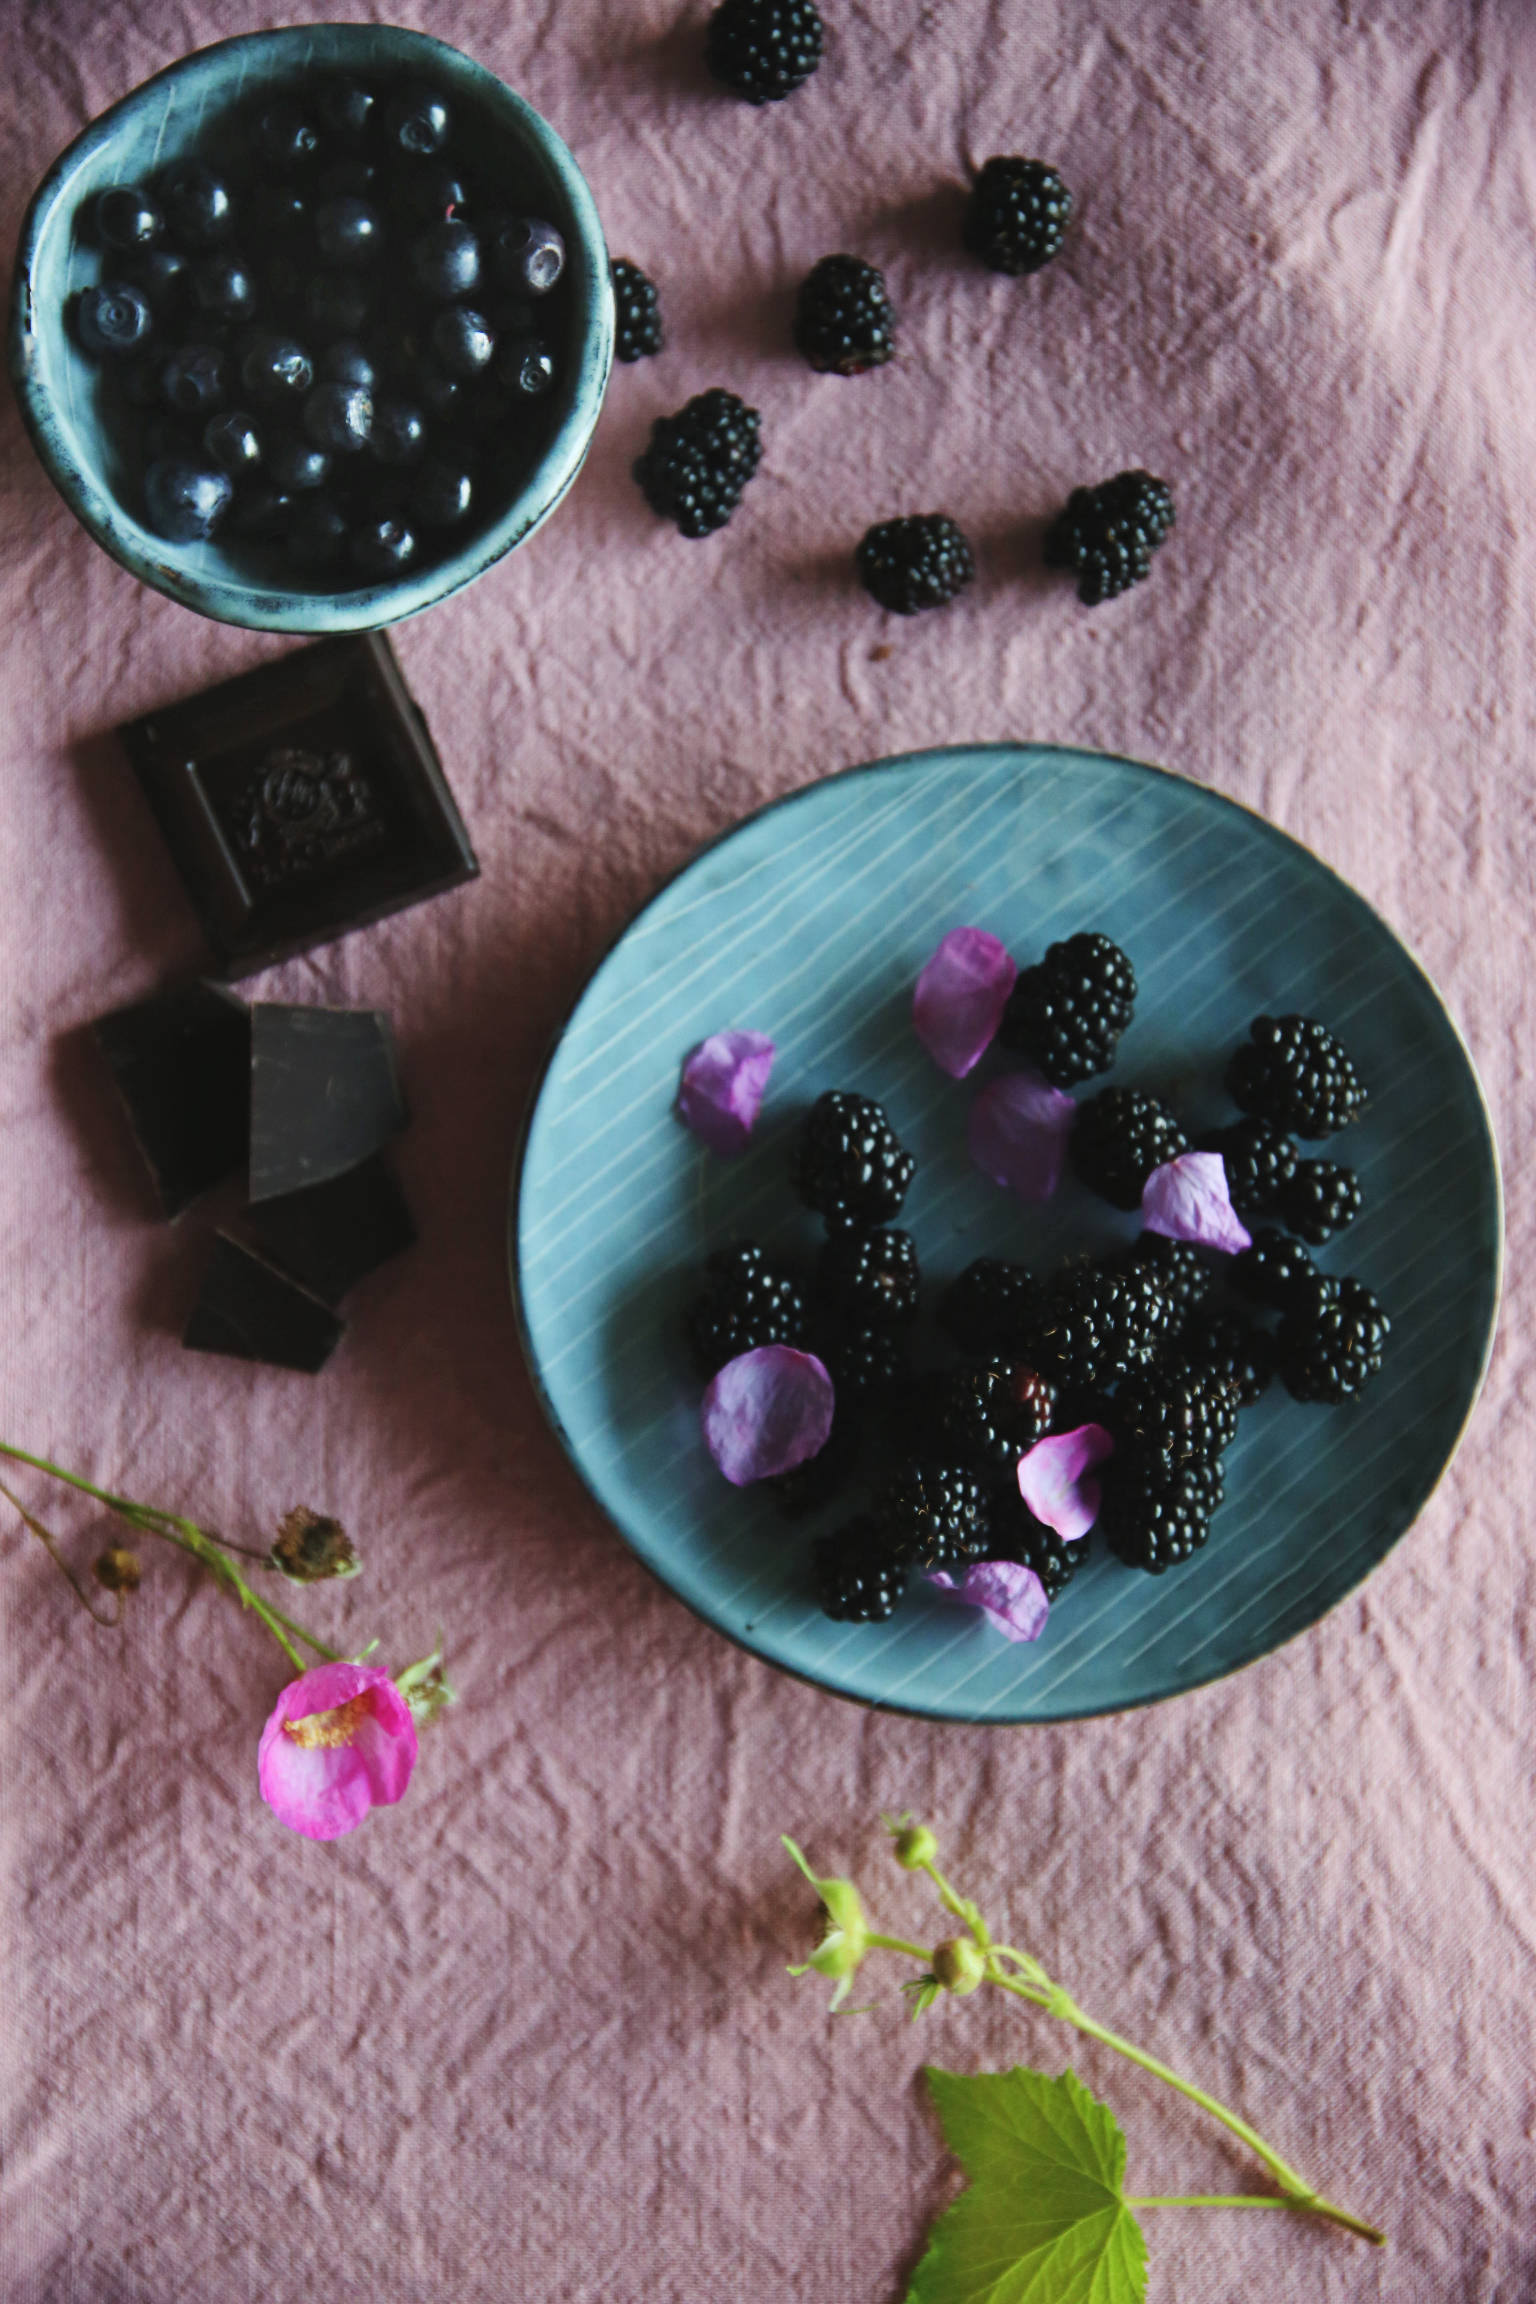 Blackberries and blueberries | Thais FK | Due fili d'erba | Two blades of grass